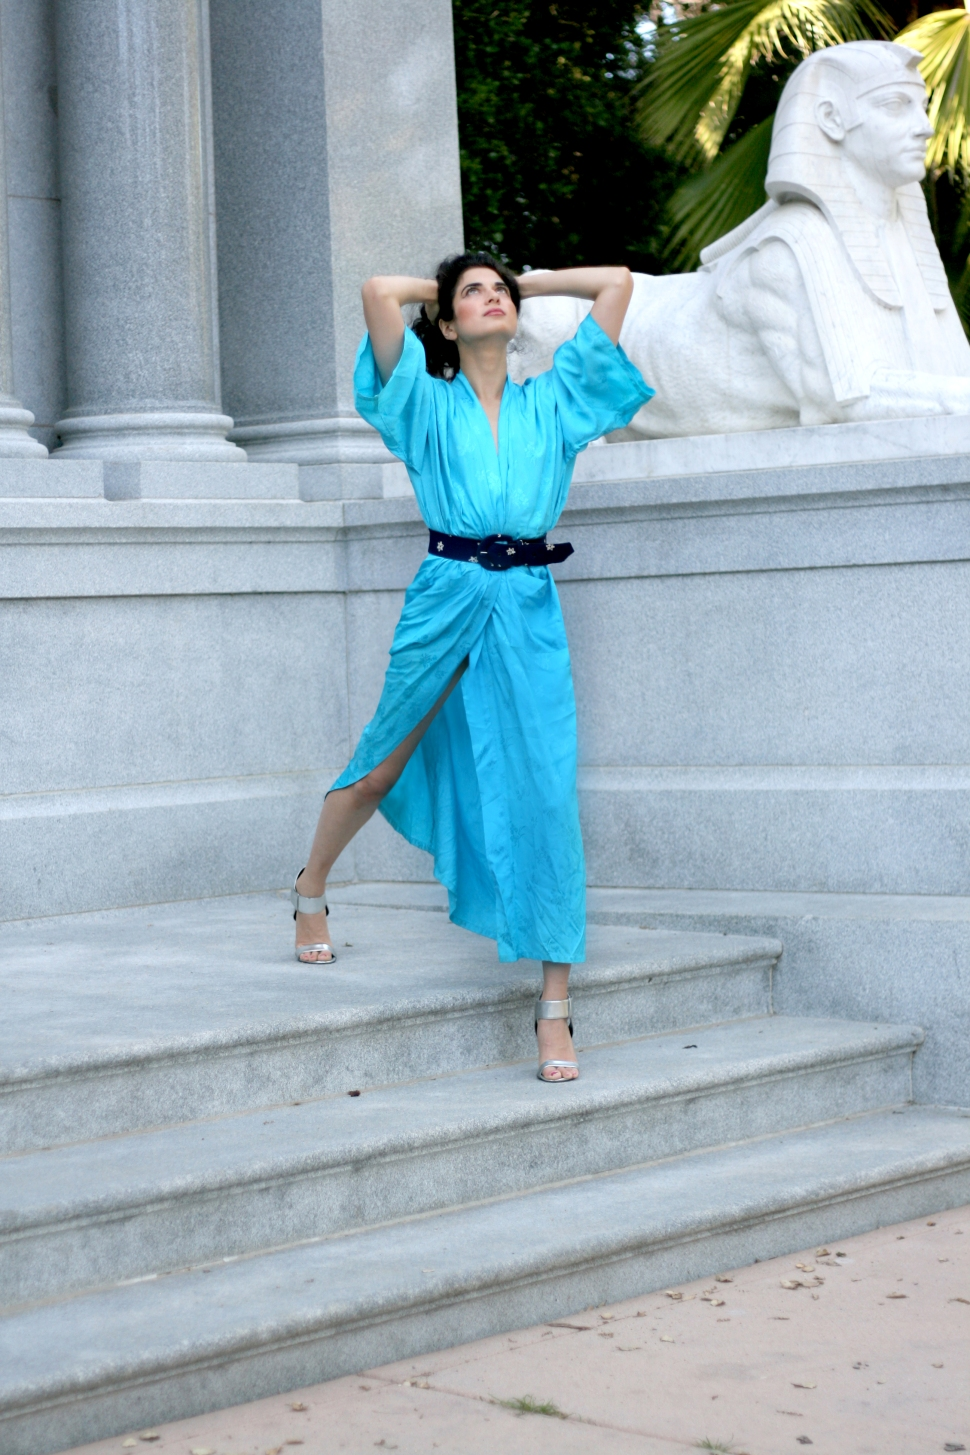 How to wear a kimono, Spring Fashion Trends, Top Fashion Blogs, San Francisco Bloggers, Silicon Valley Bloggers, Best Fashion Blog, Kimonos H&M, Spring Looks, Spring Womenswear